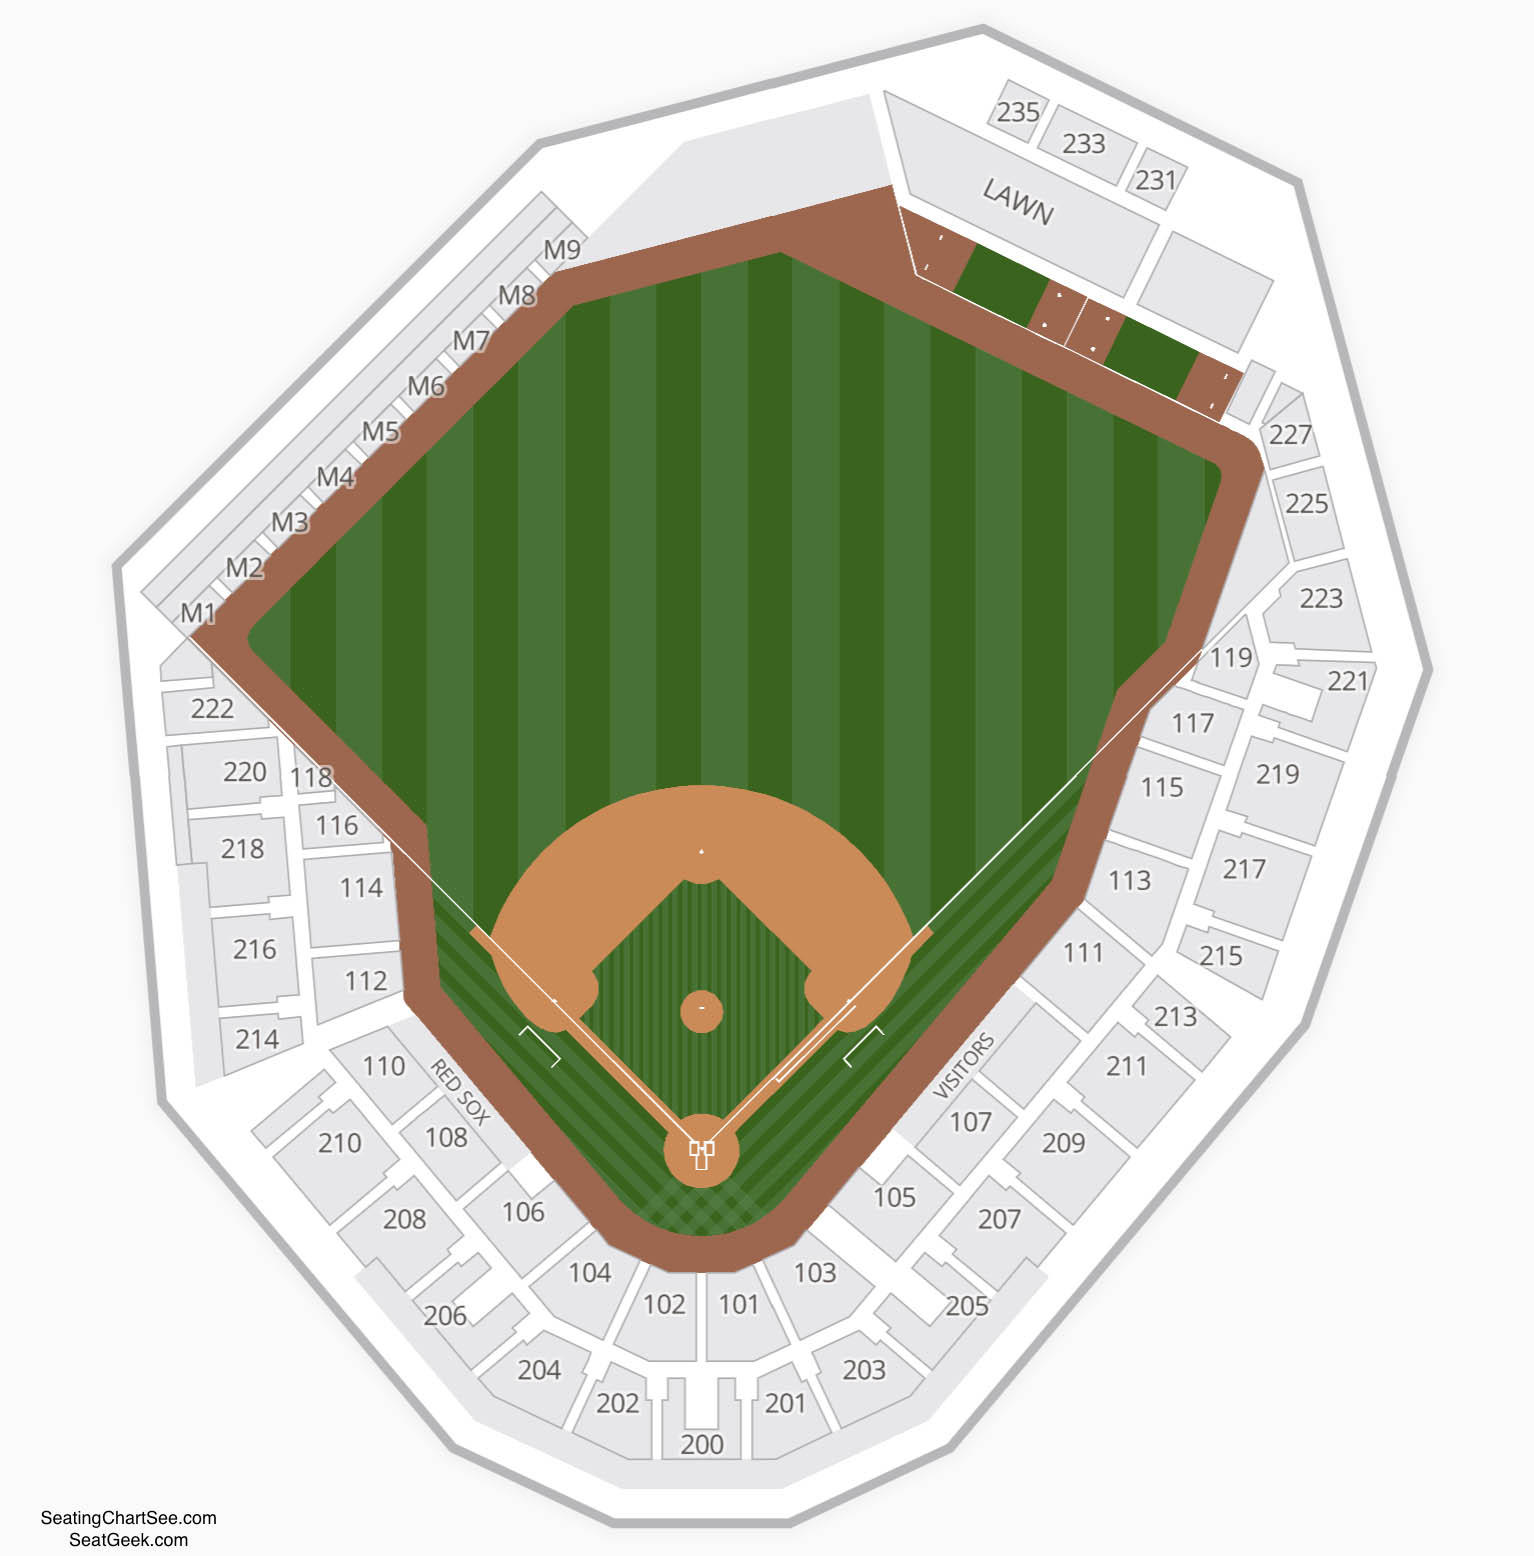 JetBlue Park at Fenway South Seating Chart